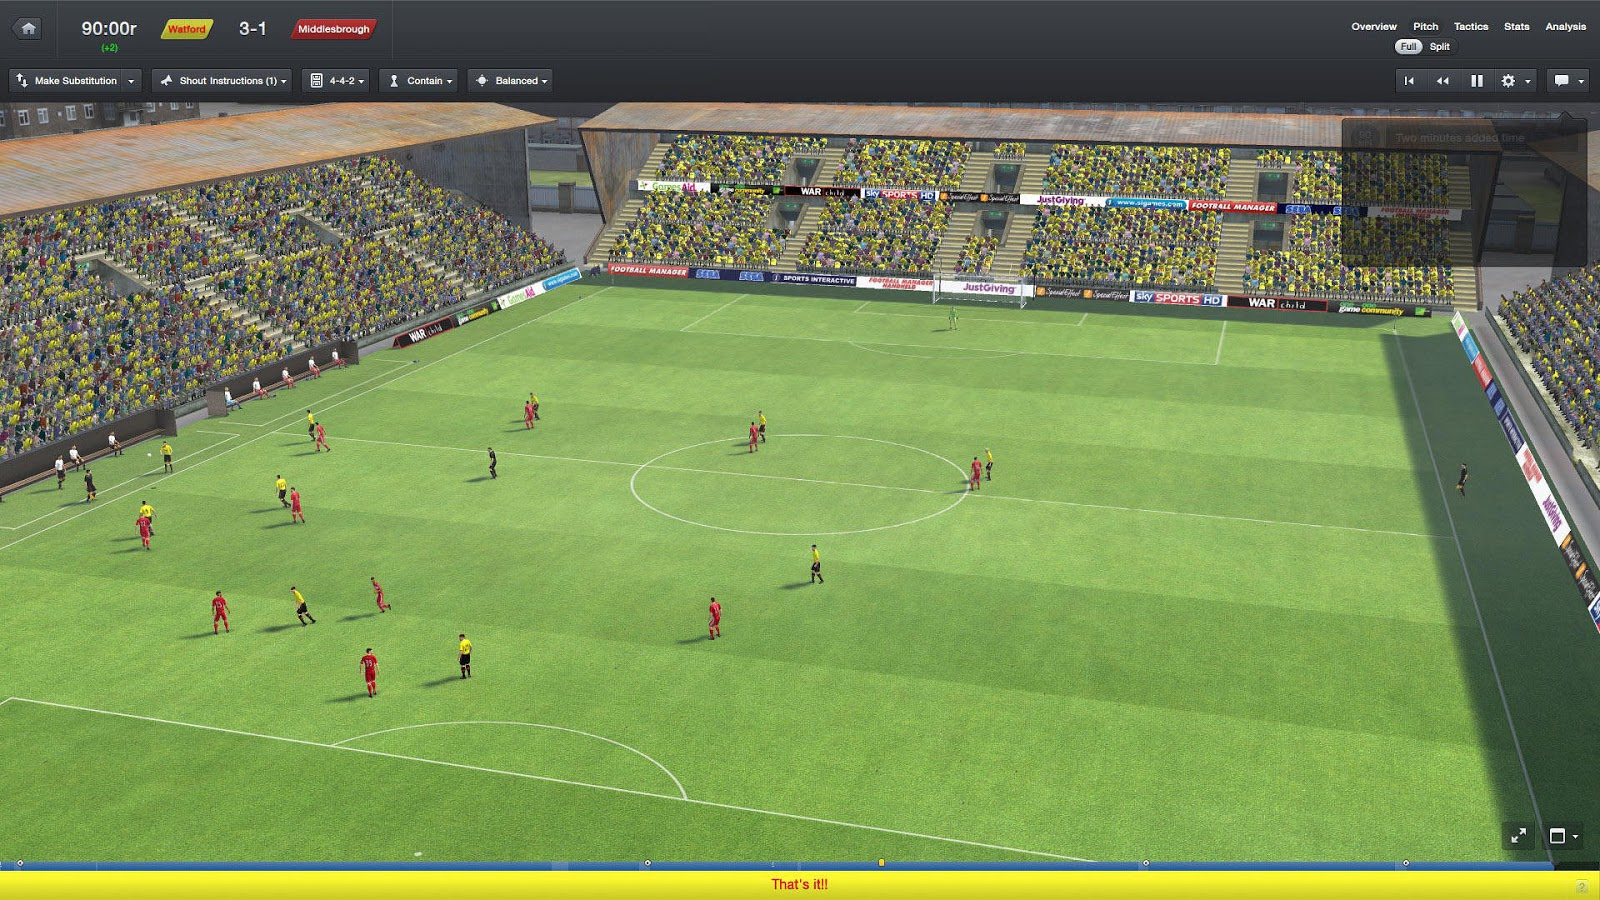 FIFA Football Games For PC Free Download - Full Version